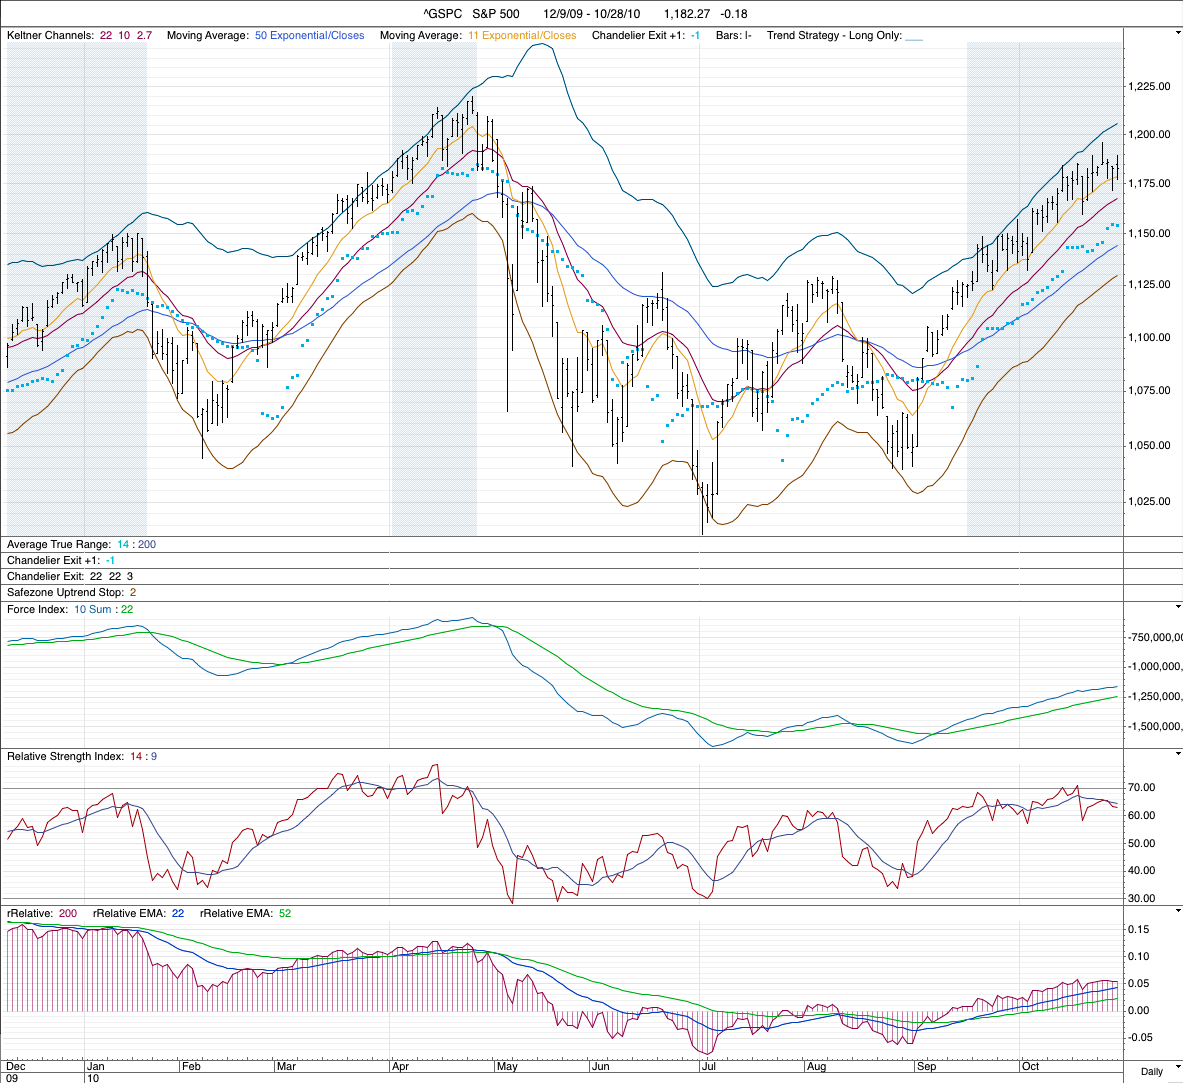 sp500_signal_28-10-10.png